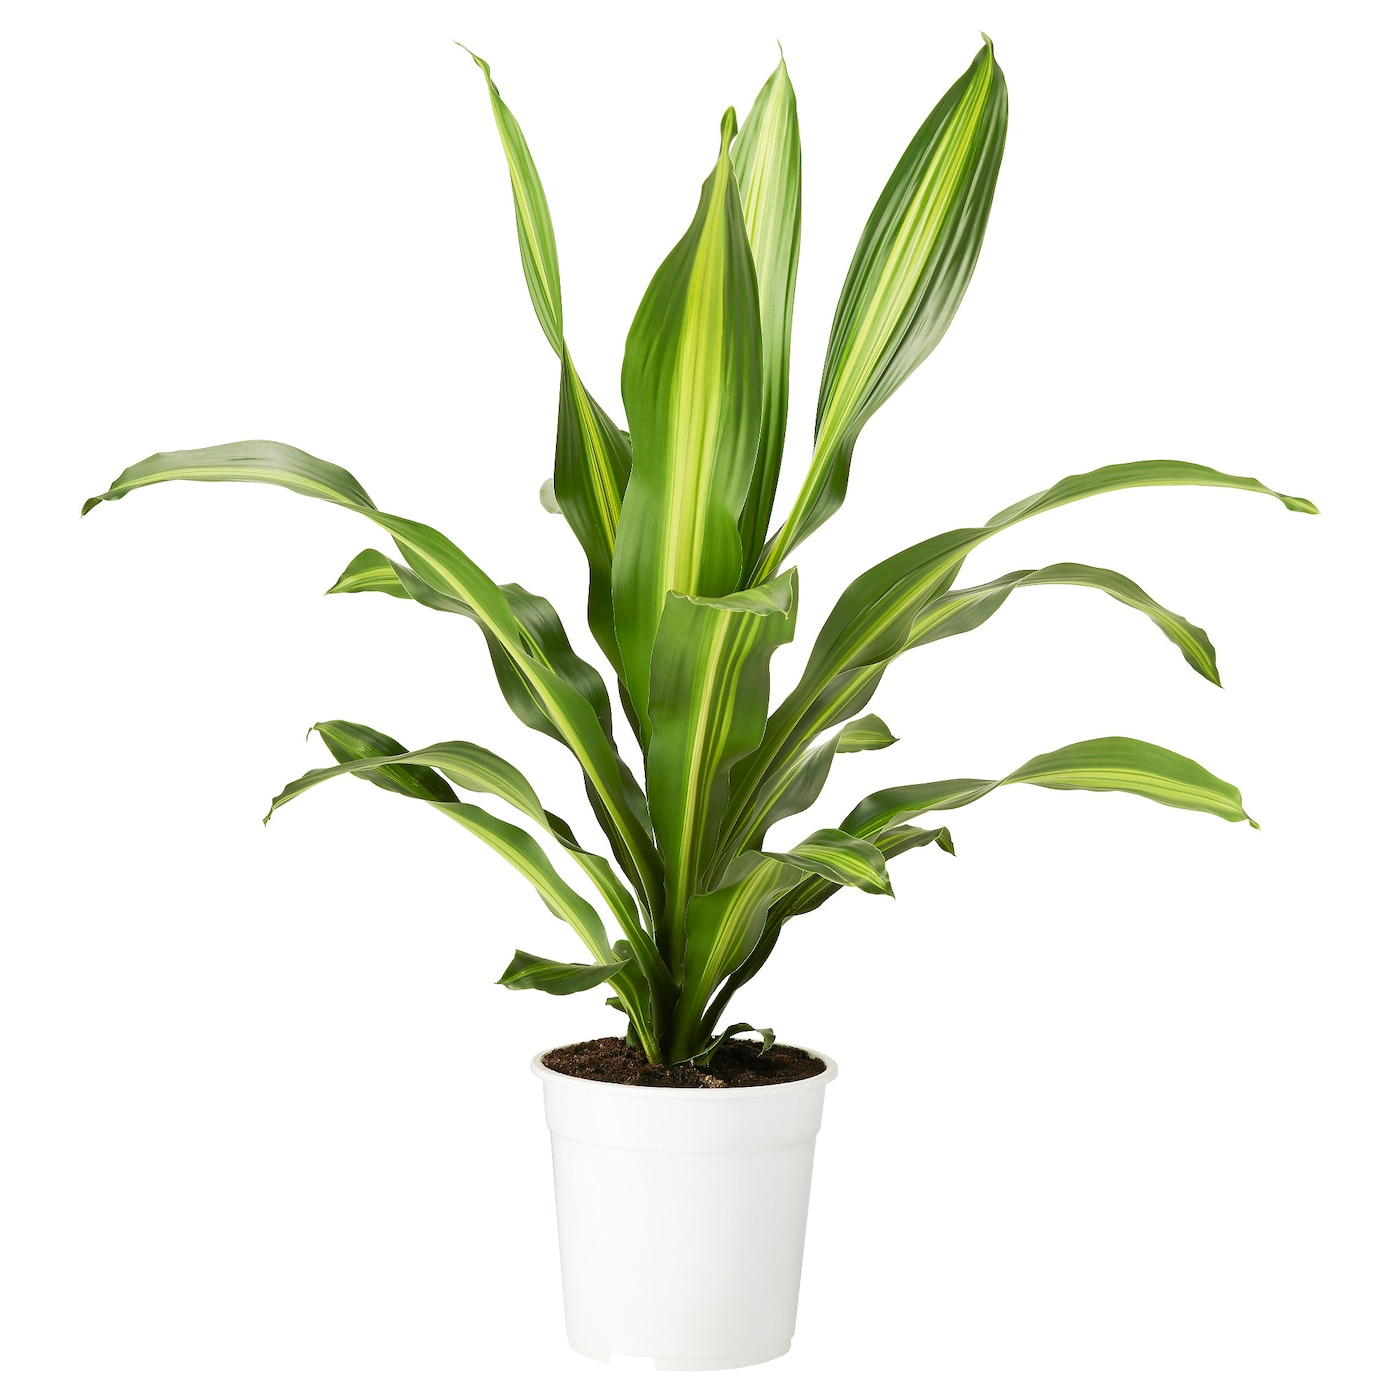 dracaena burley plante en pot 24 cm ikea. Black Bedroom Furniture Sets. Home Design Ideas